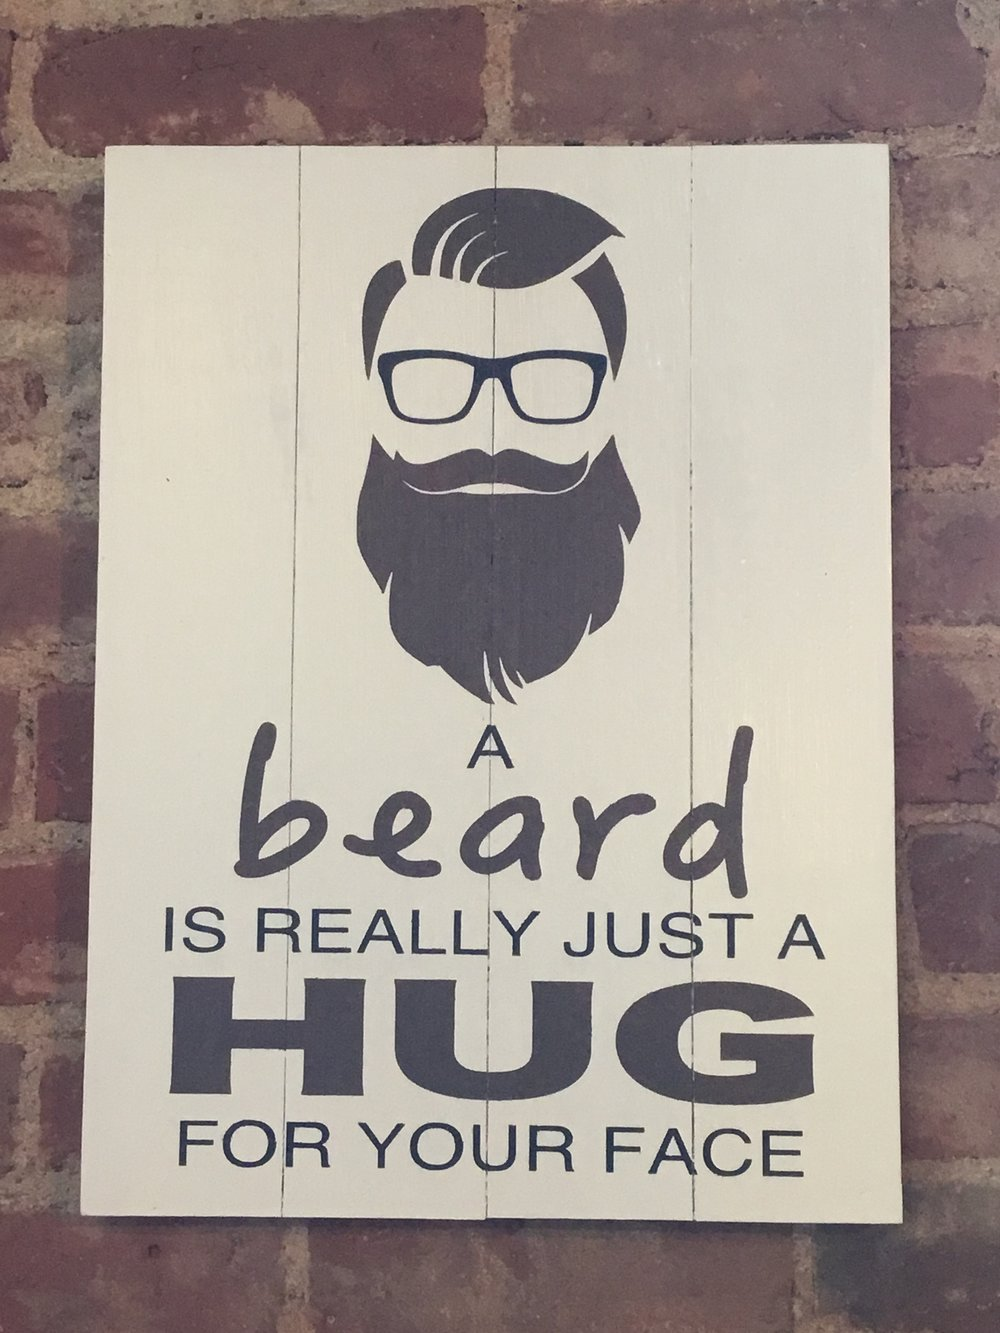 A beard is really just a hug..